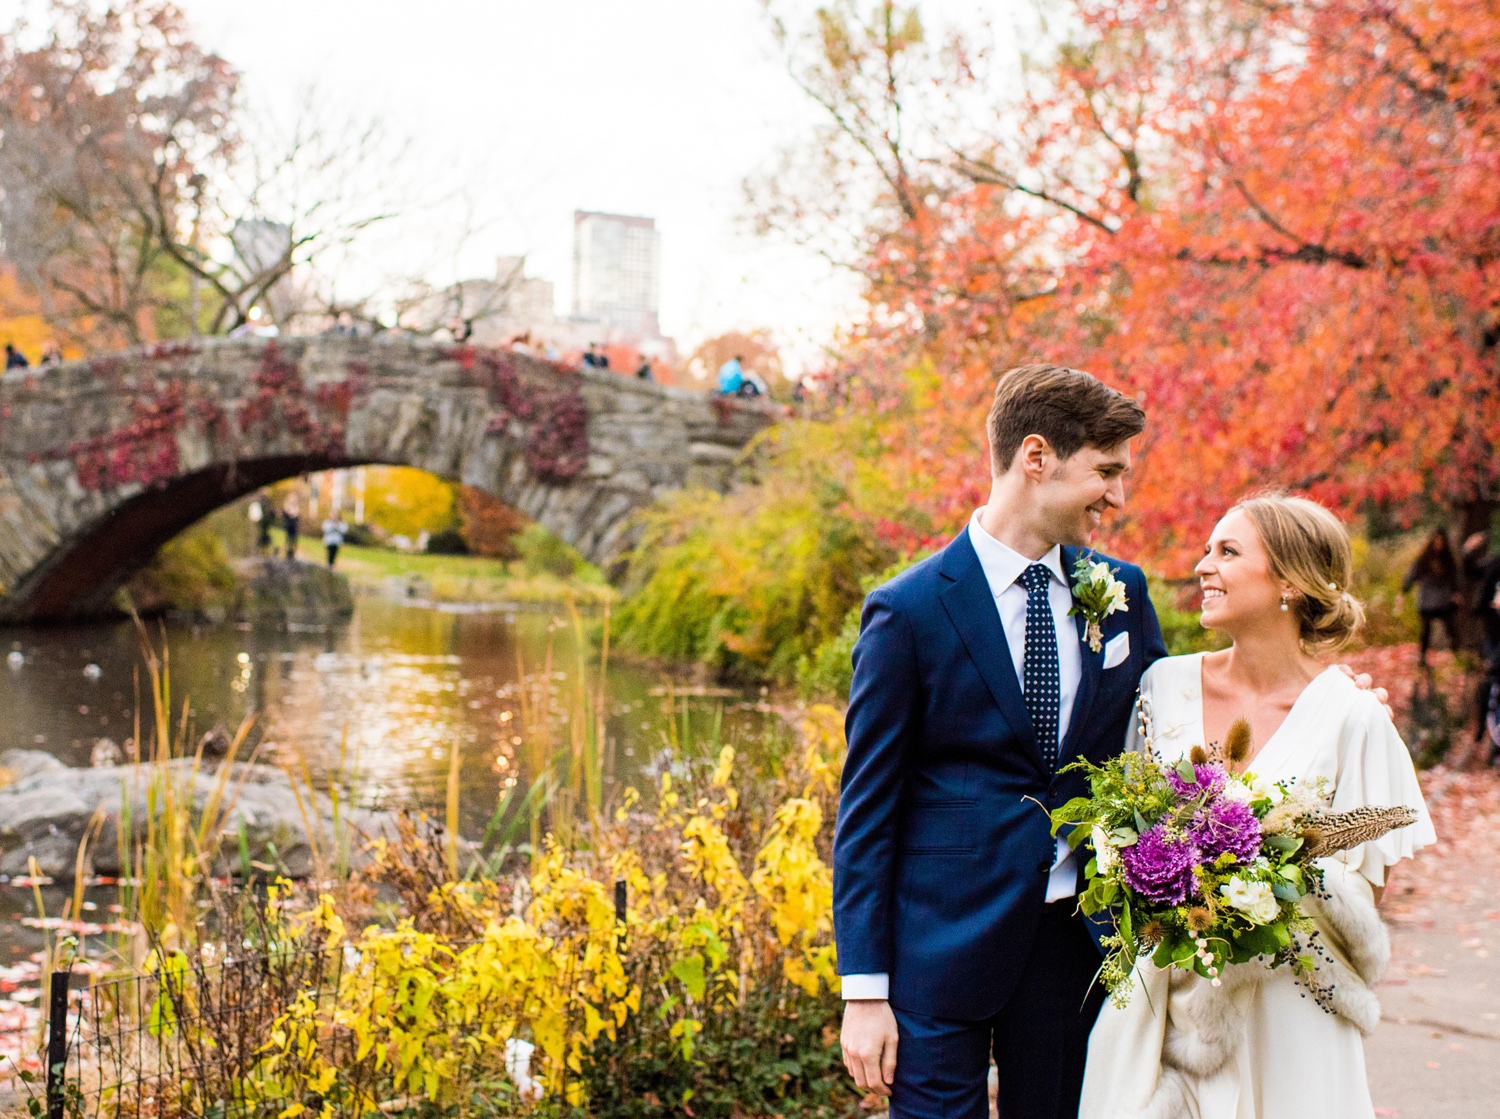 Bridal Florist Nyc : Nyc wedding florist with sustainable local bouquets